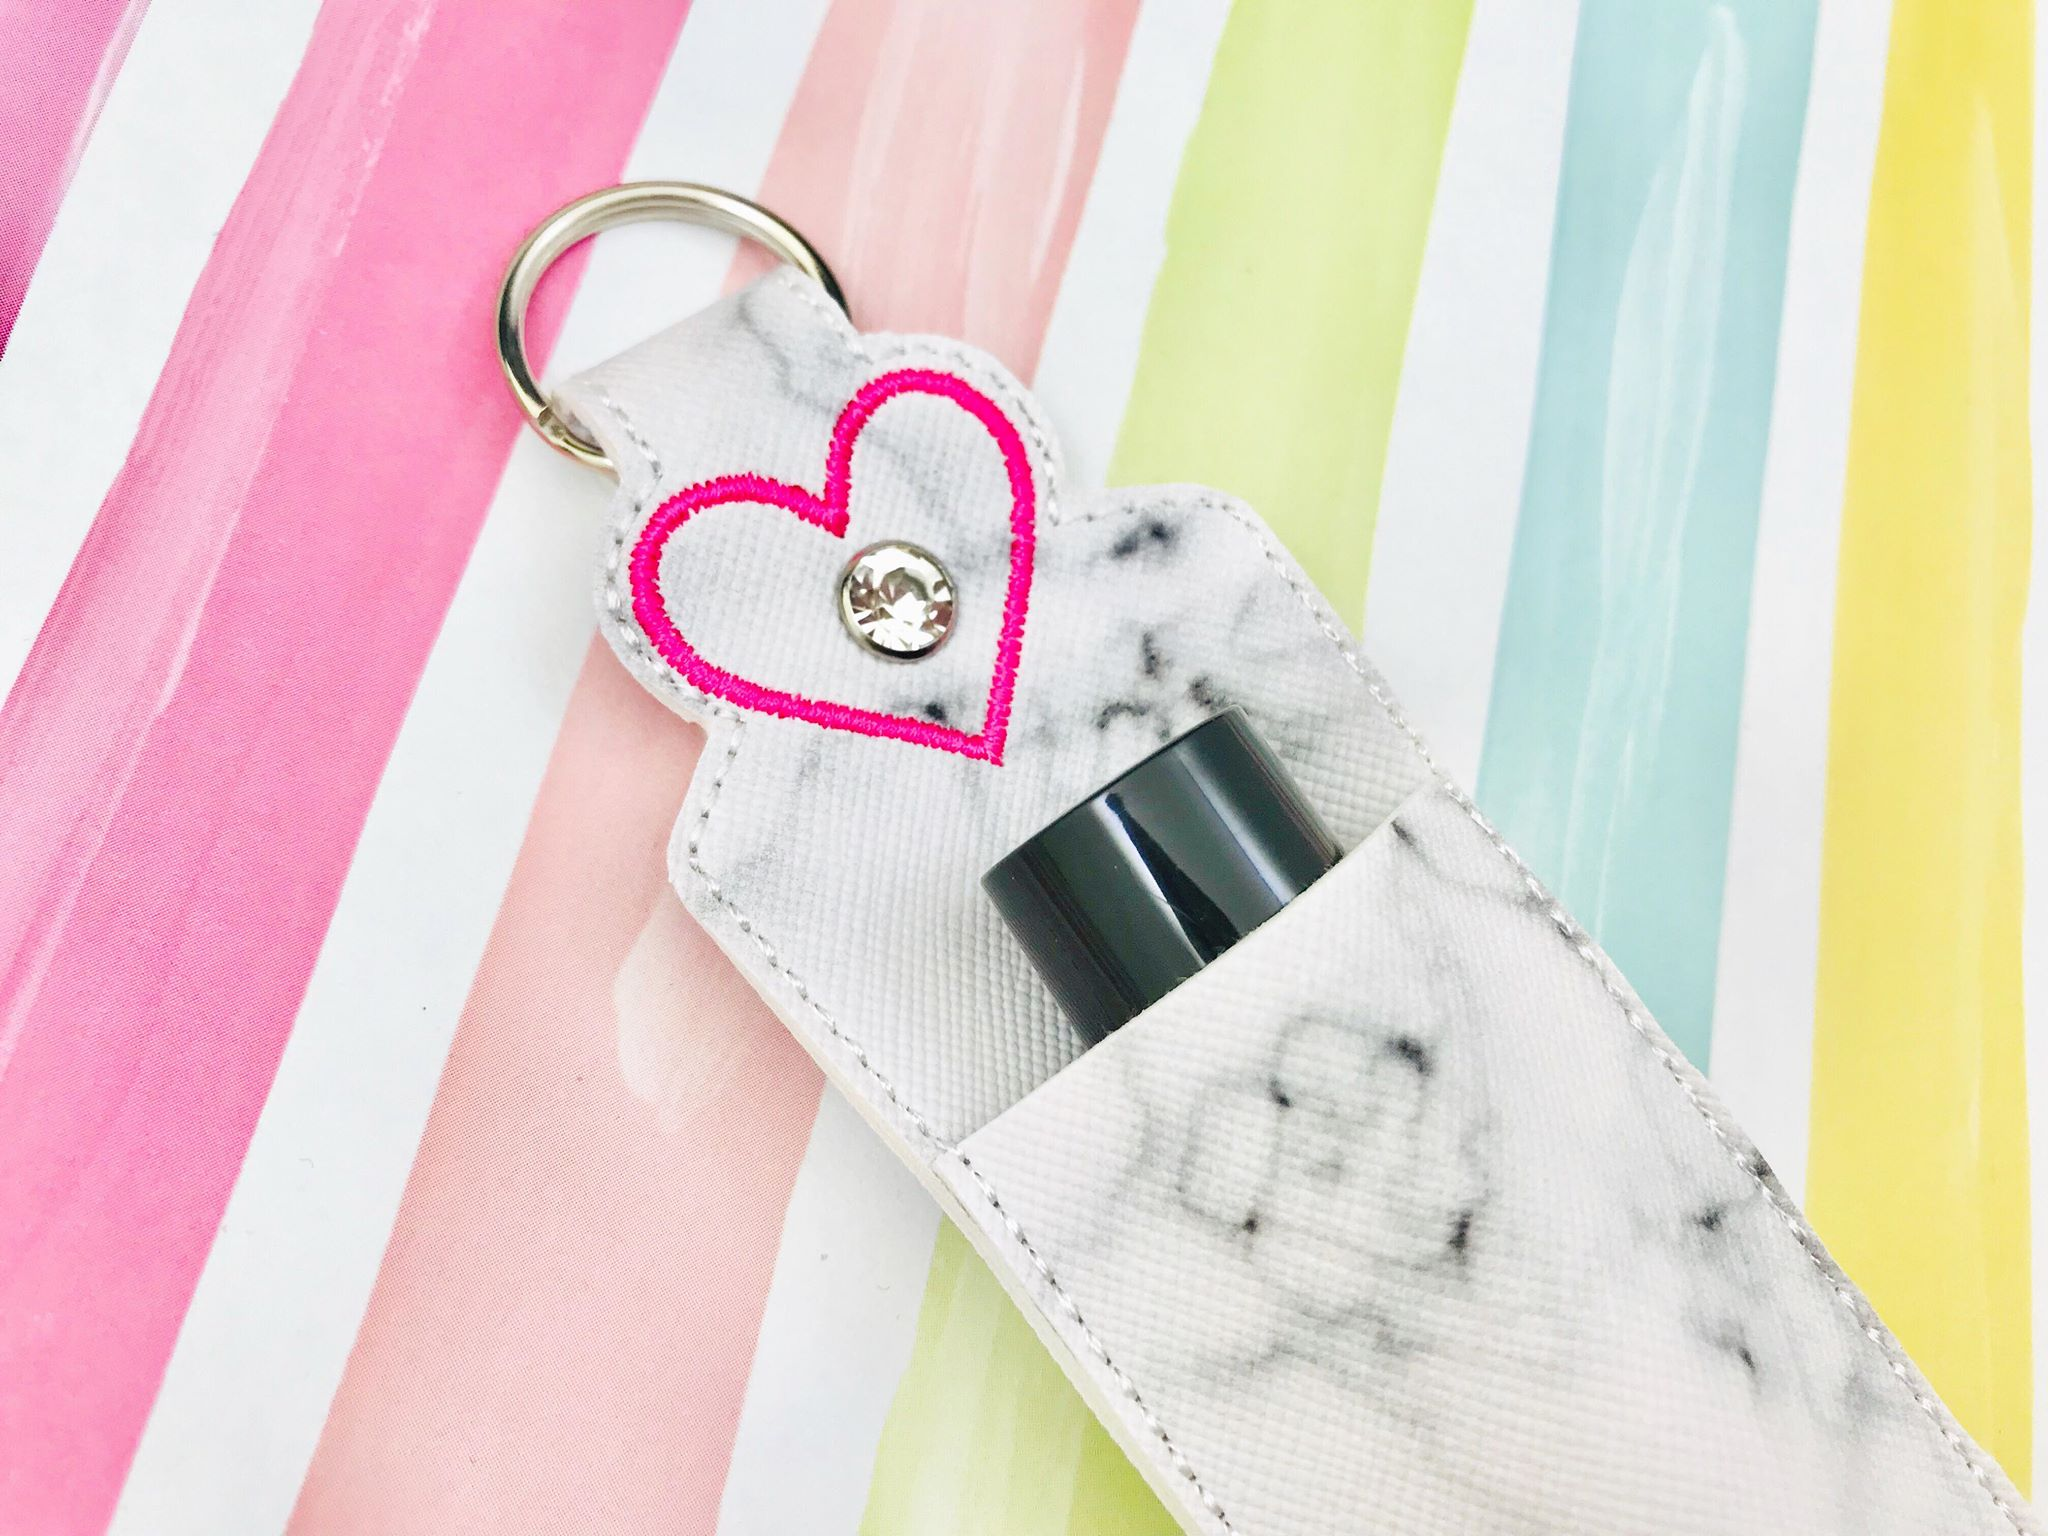 Heart Essential Oil Holder- Fits 10ml bottle